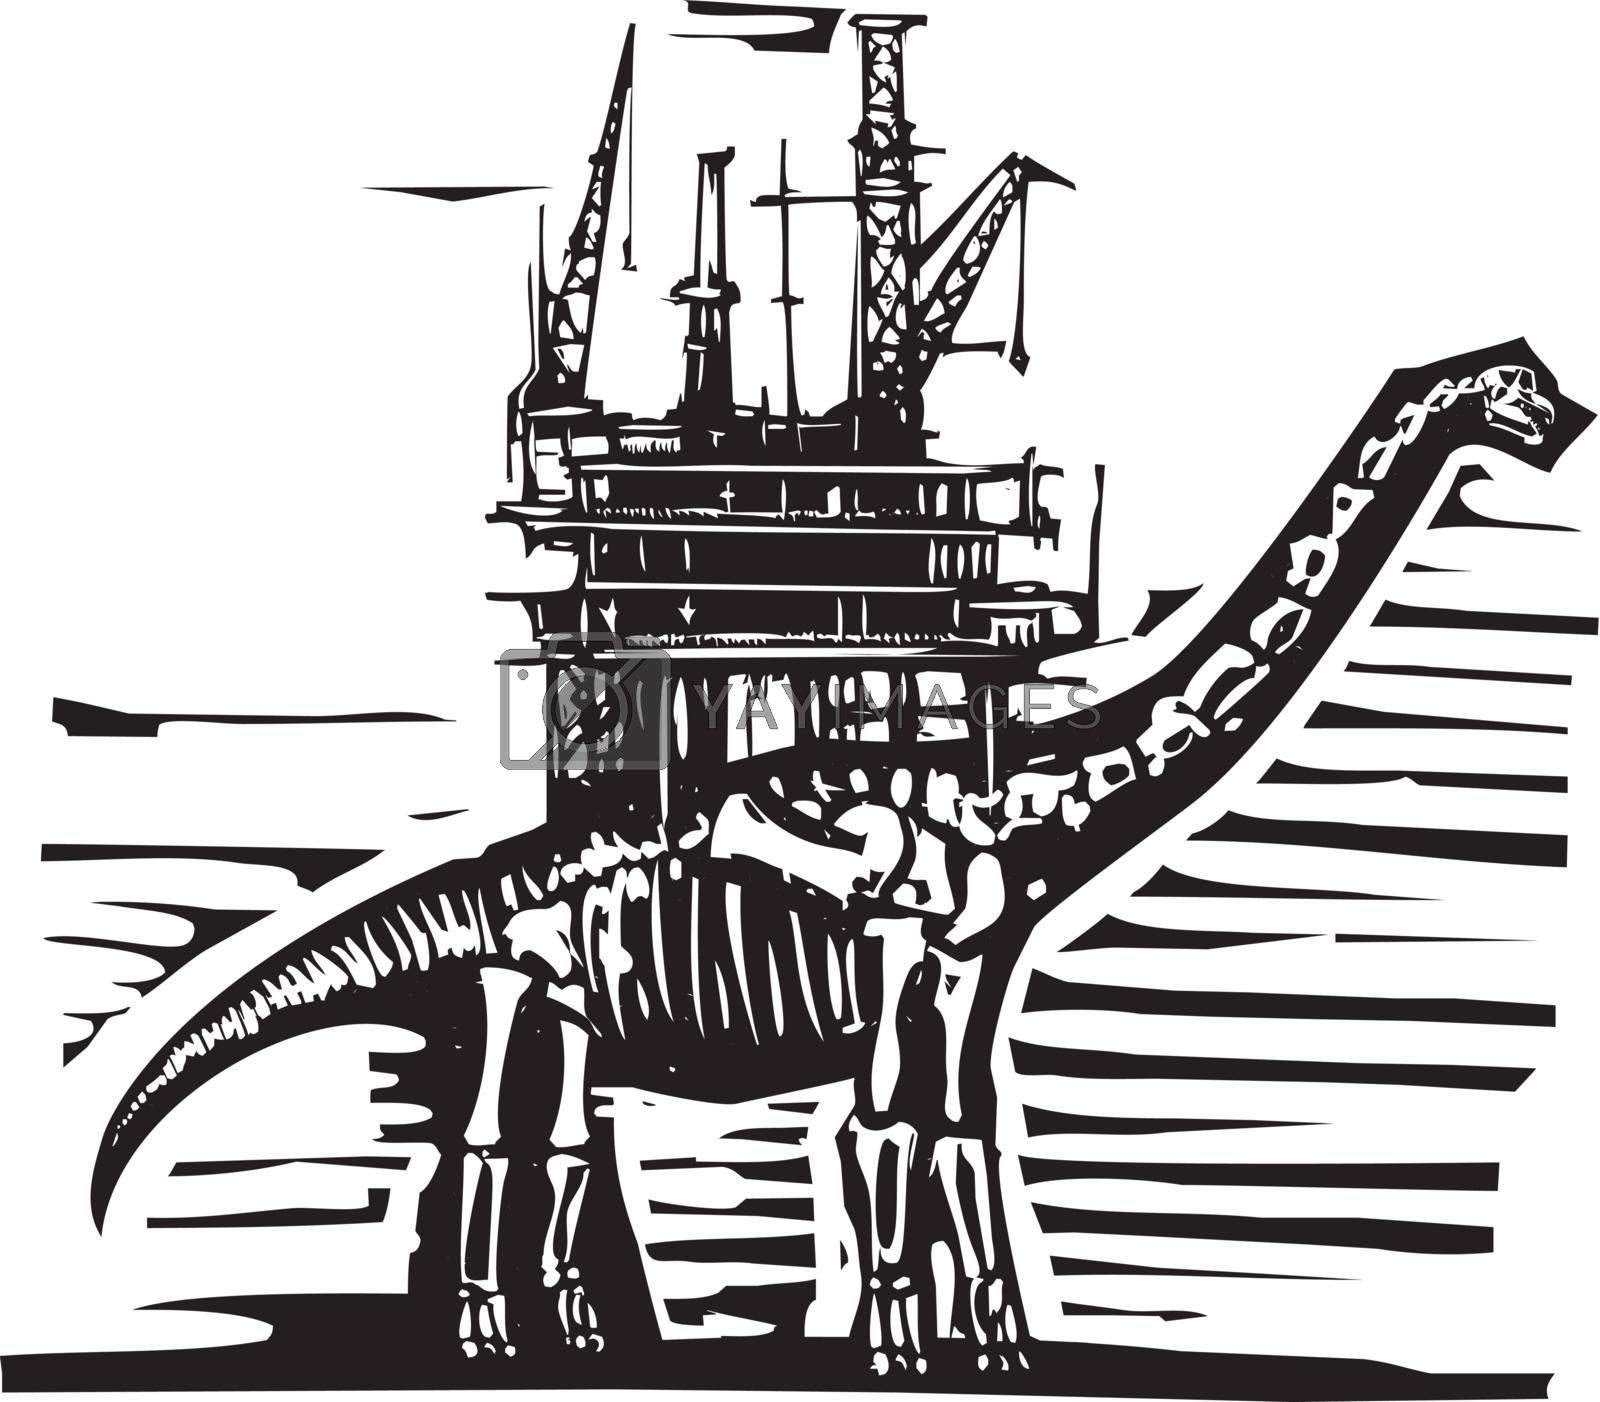 Woodcut style image of a fossil of a brontosaurus apatosaurus dinosaur with an oil rig on its back.